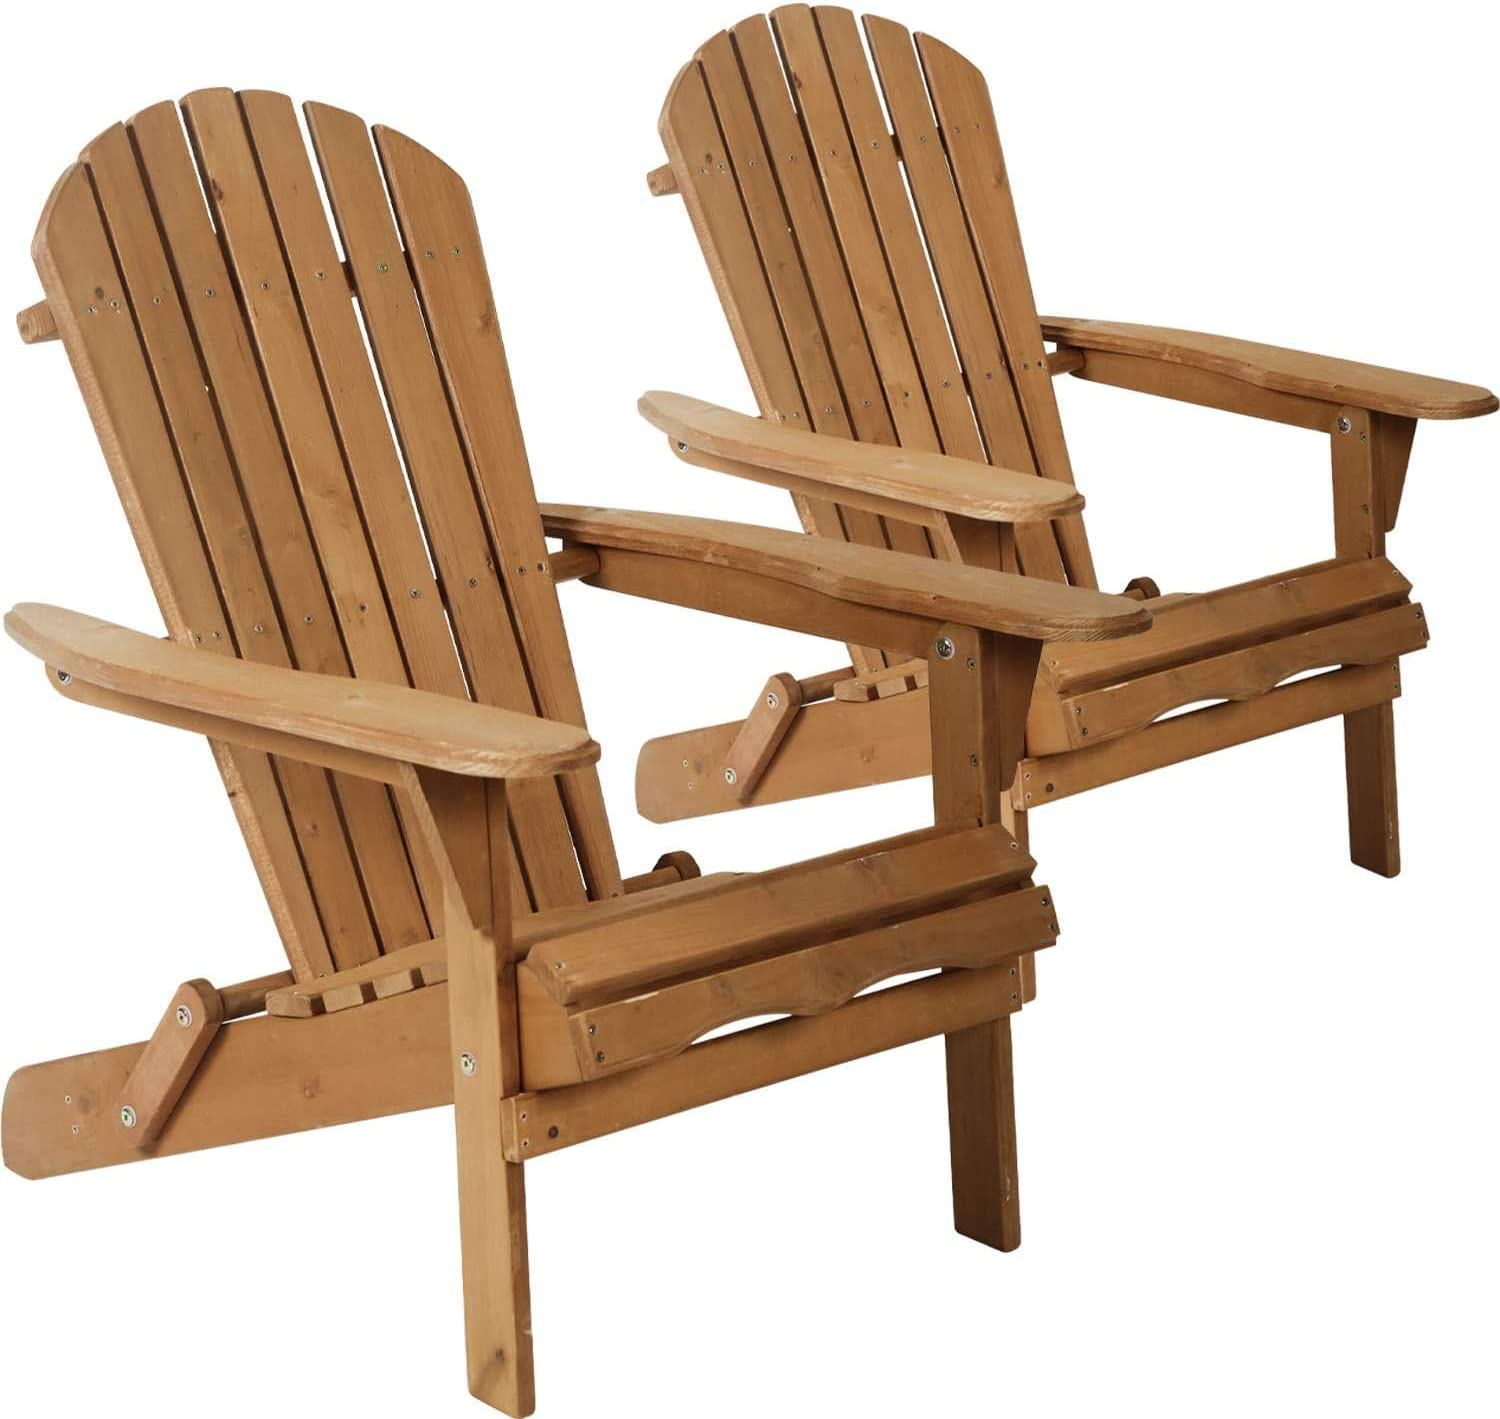 Folding Wooden Adirondack Chair In stock Albuquerque Mall Accent W Lounger Furniture